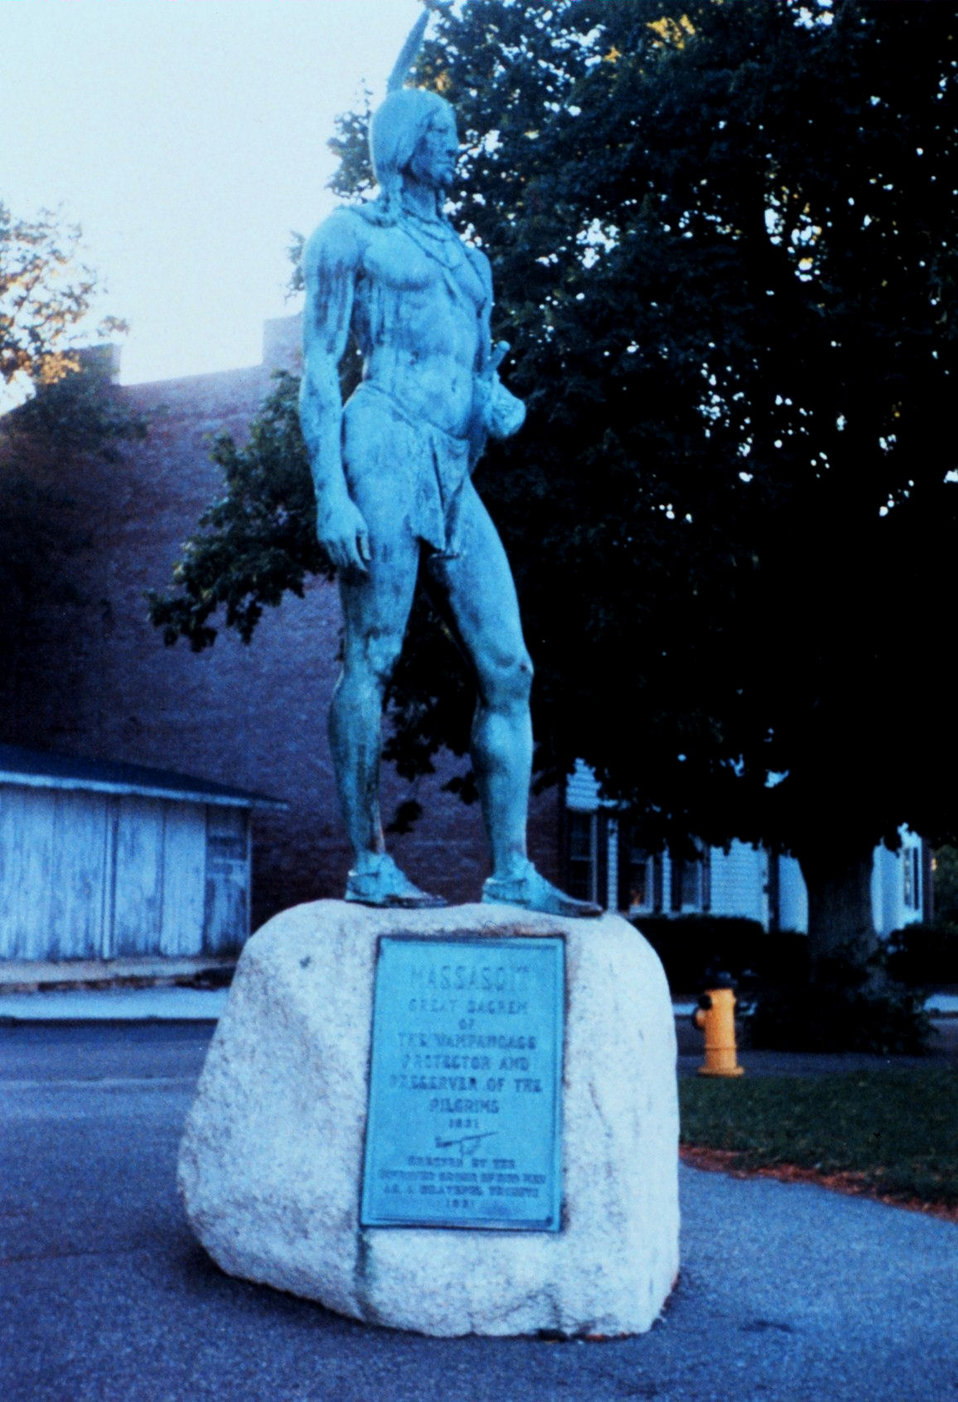 Massasoit, protector and preserver of the Pilgrims.  Statue erected in his memory at Plymouth.